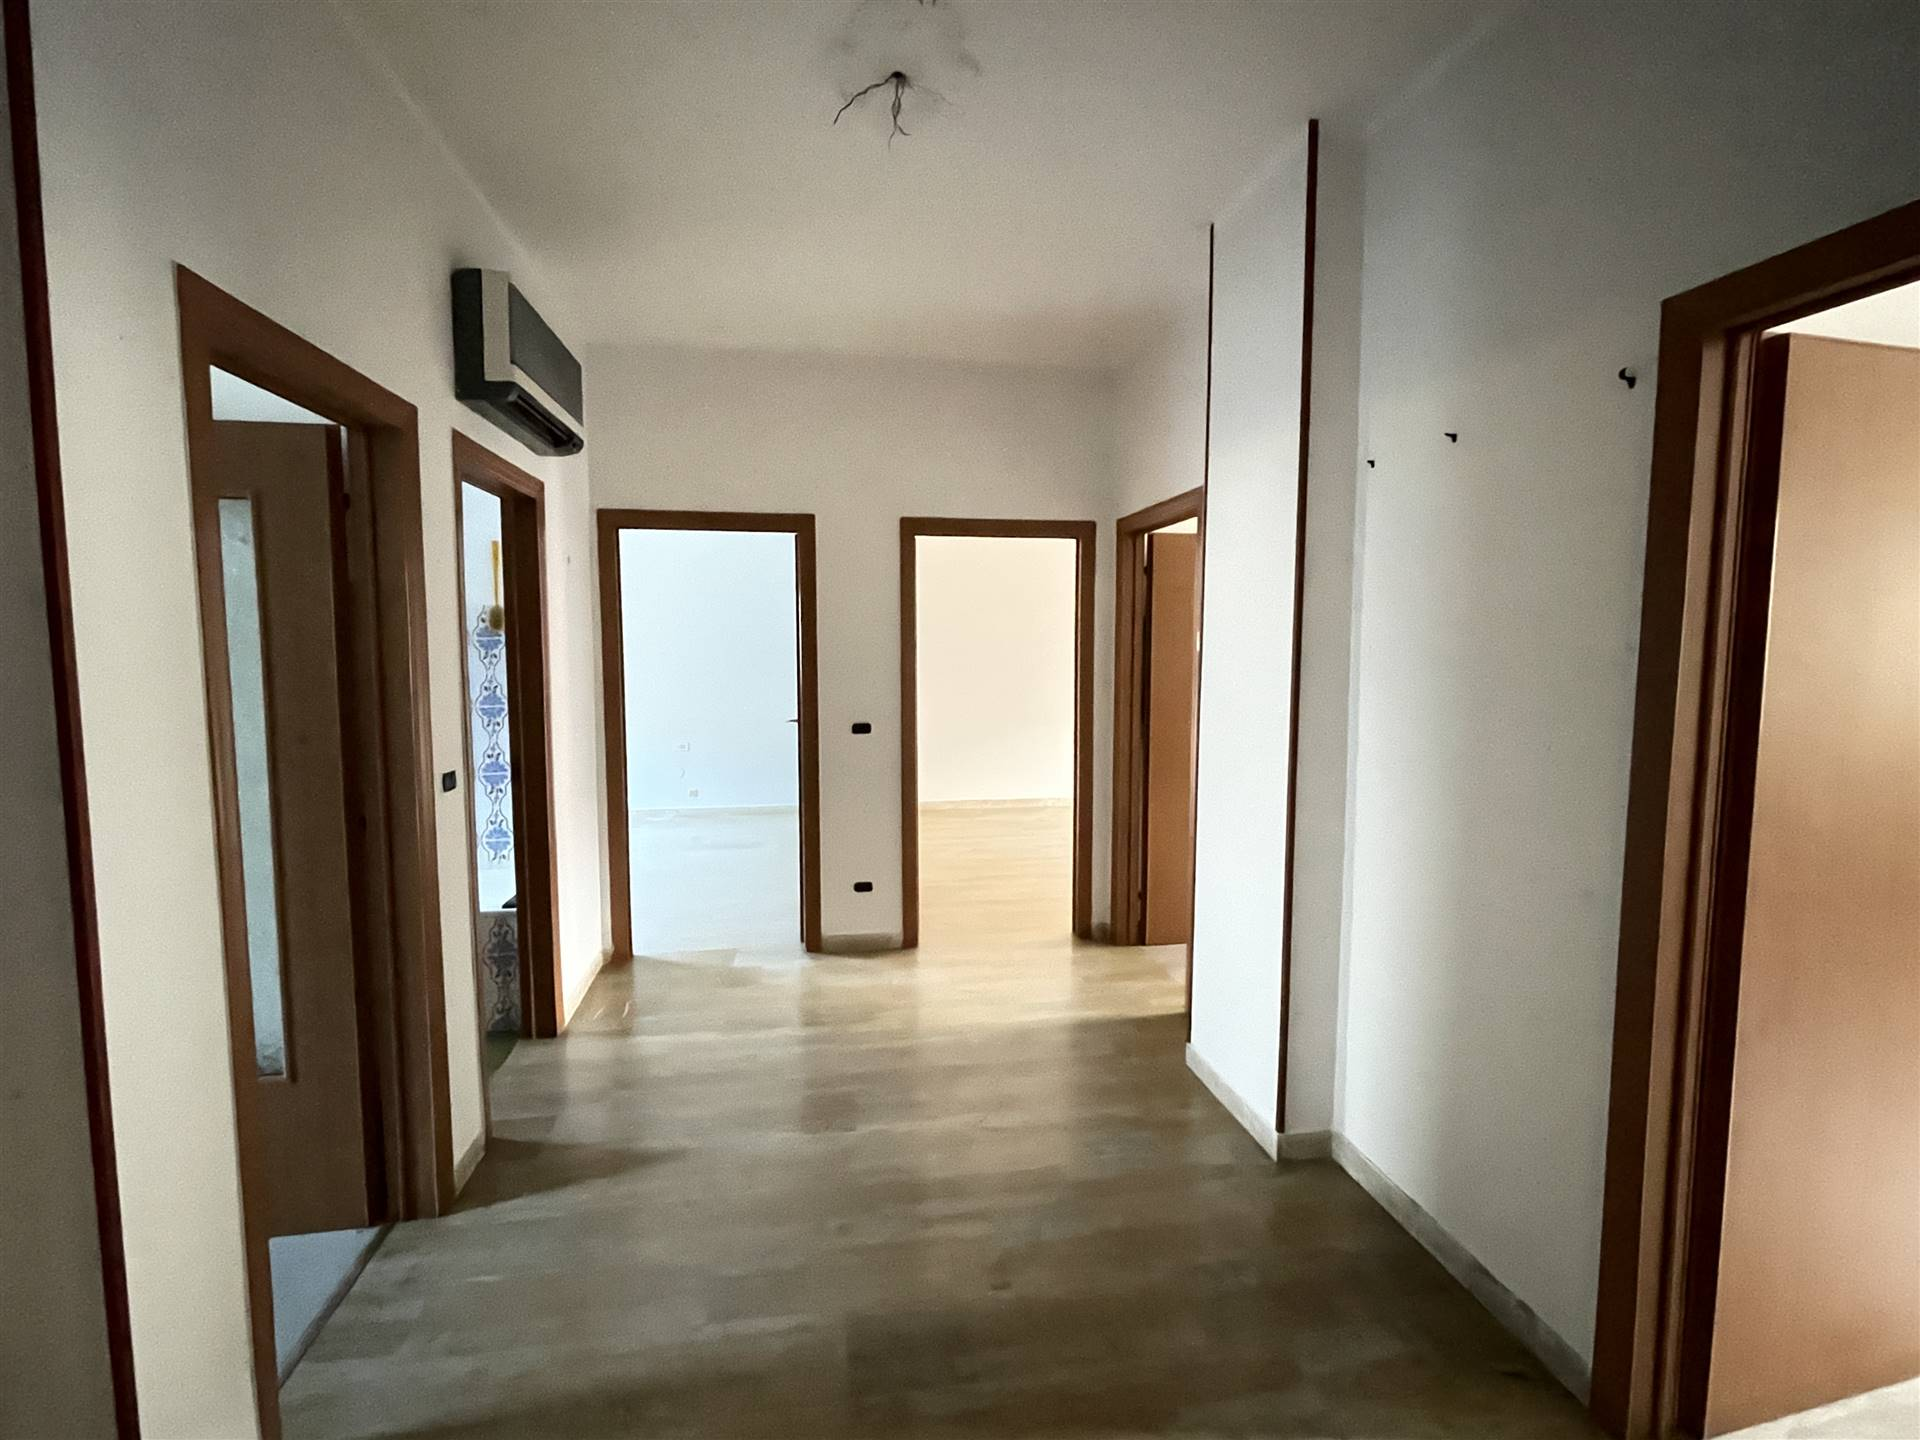 BORGO SAN GIOVANNI, CHIOGGIA, Apartment for sale of 90 Sq. mt., Habitable, Heating Individual heating system, Energetic class: G, placed at 1° on 5,